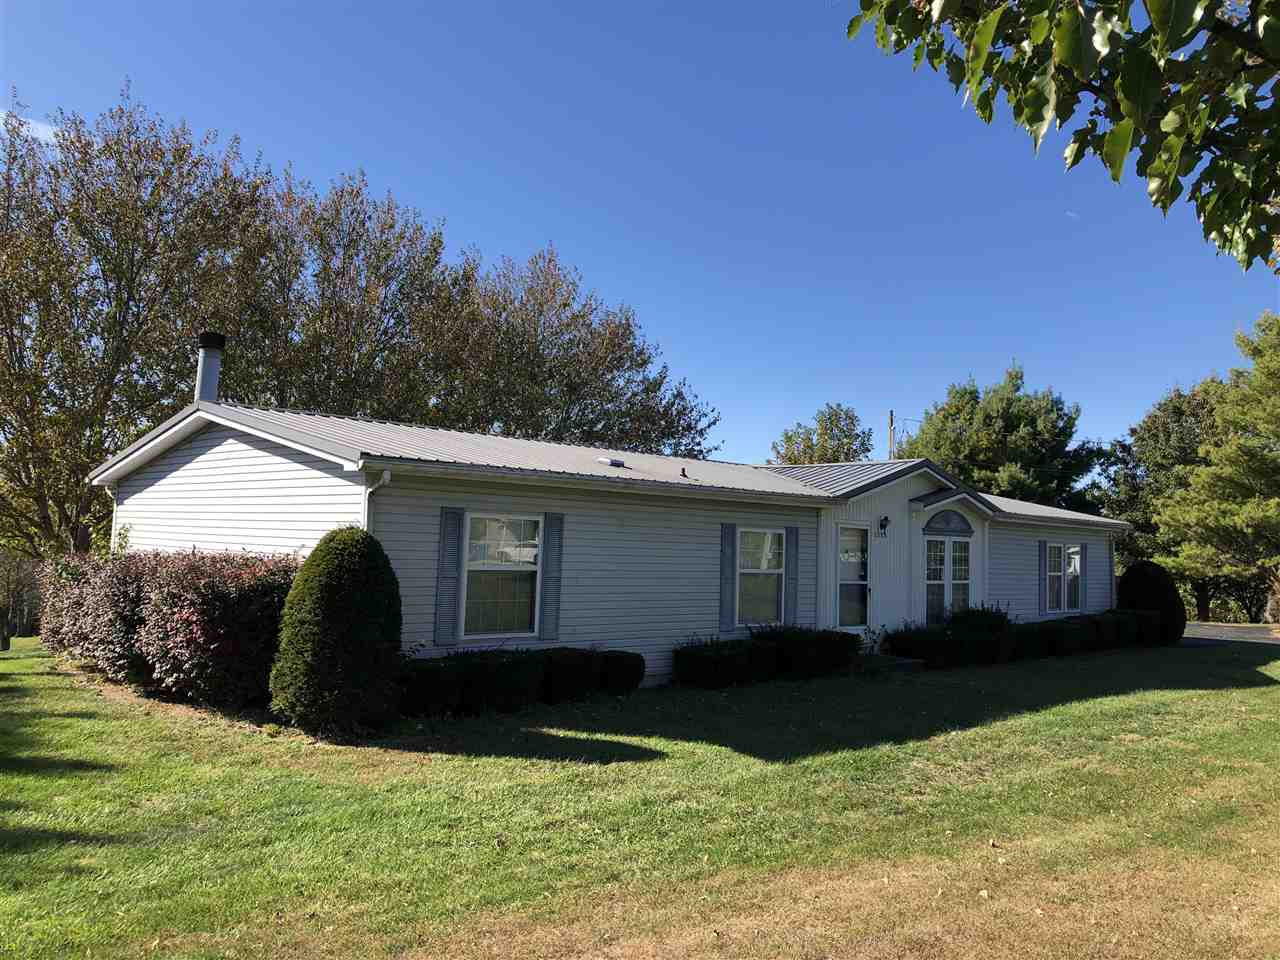 Photo 2 for 3505 Greenville Dr Dry Ridge, KY 41035